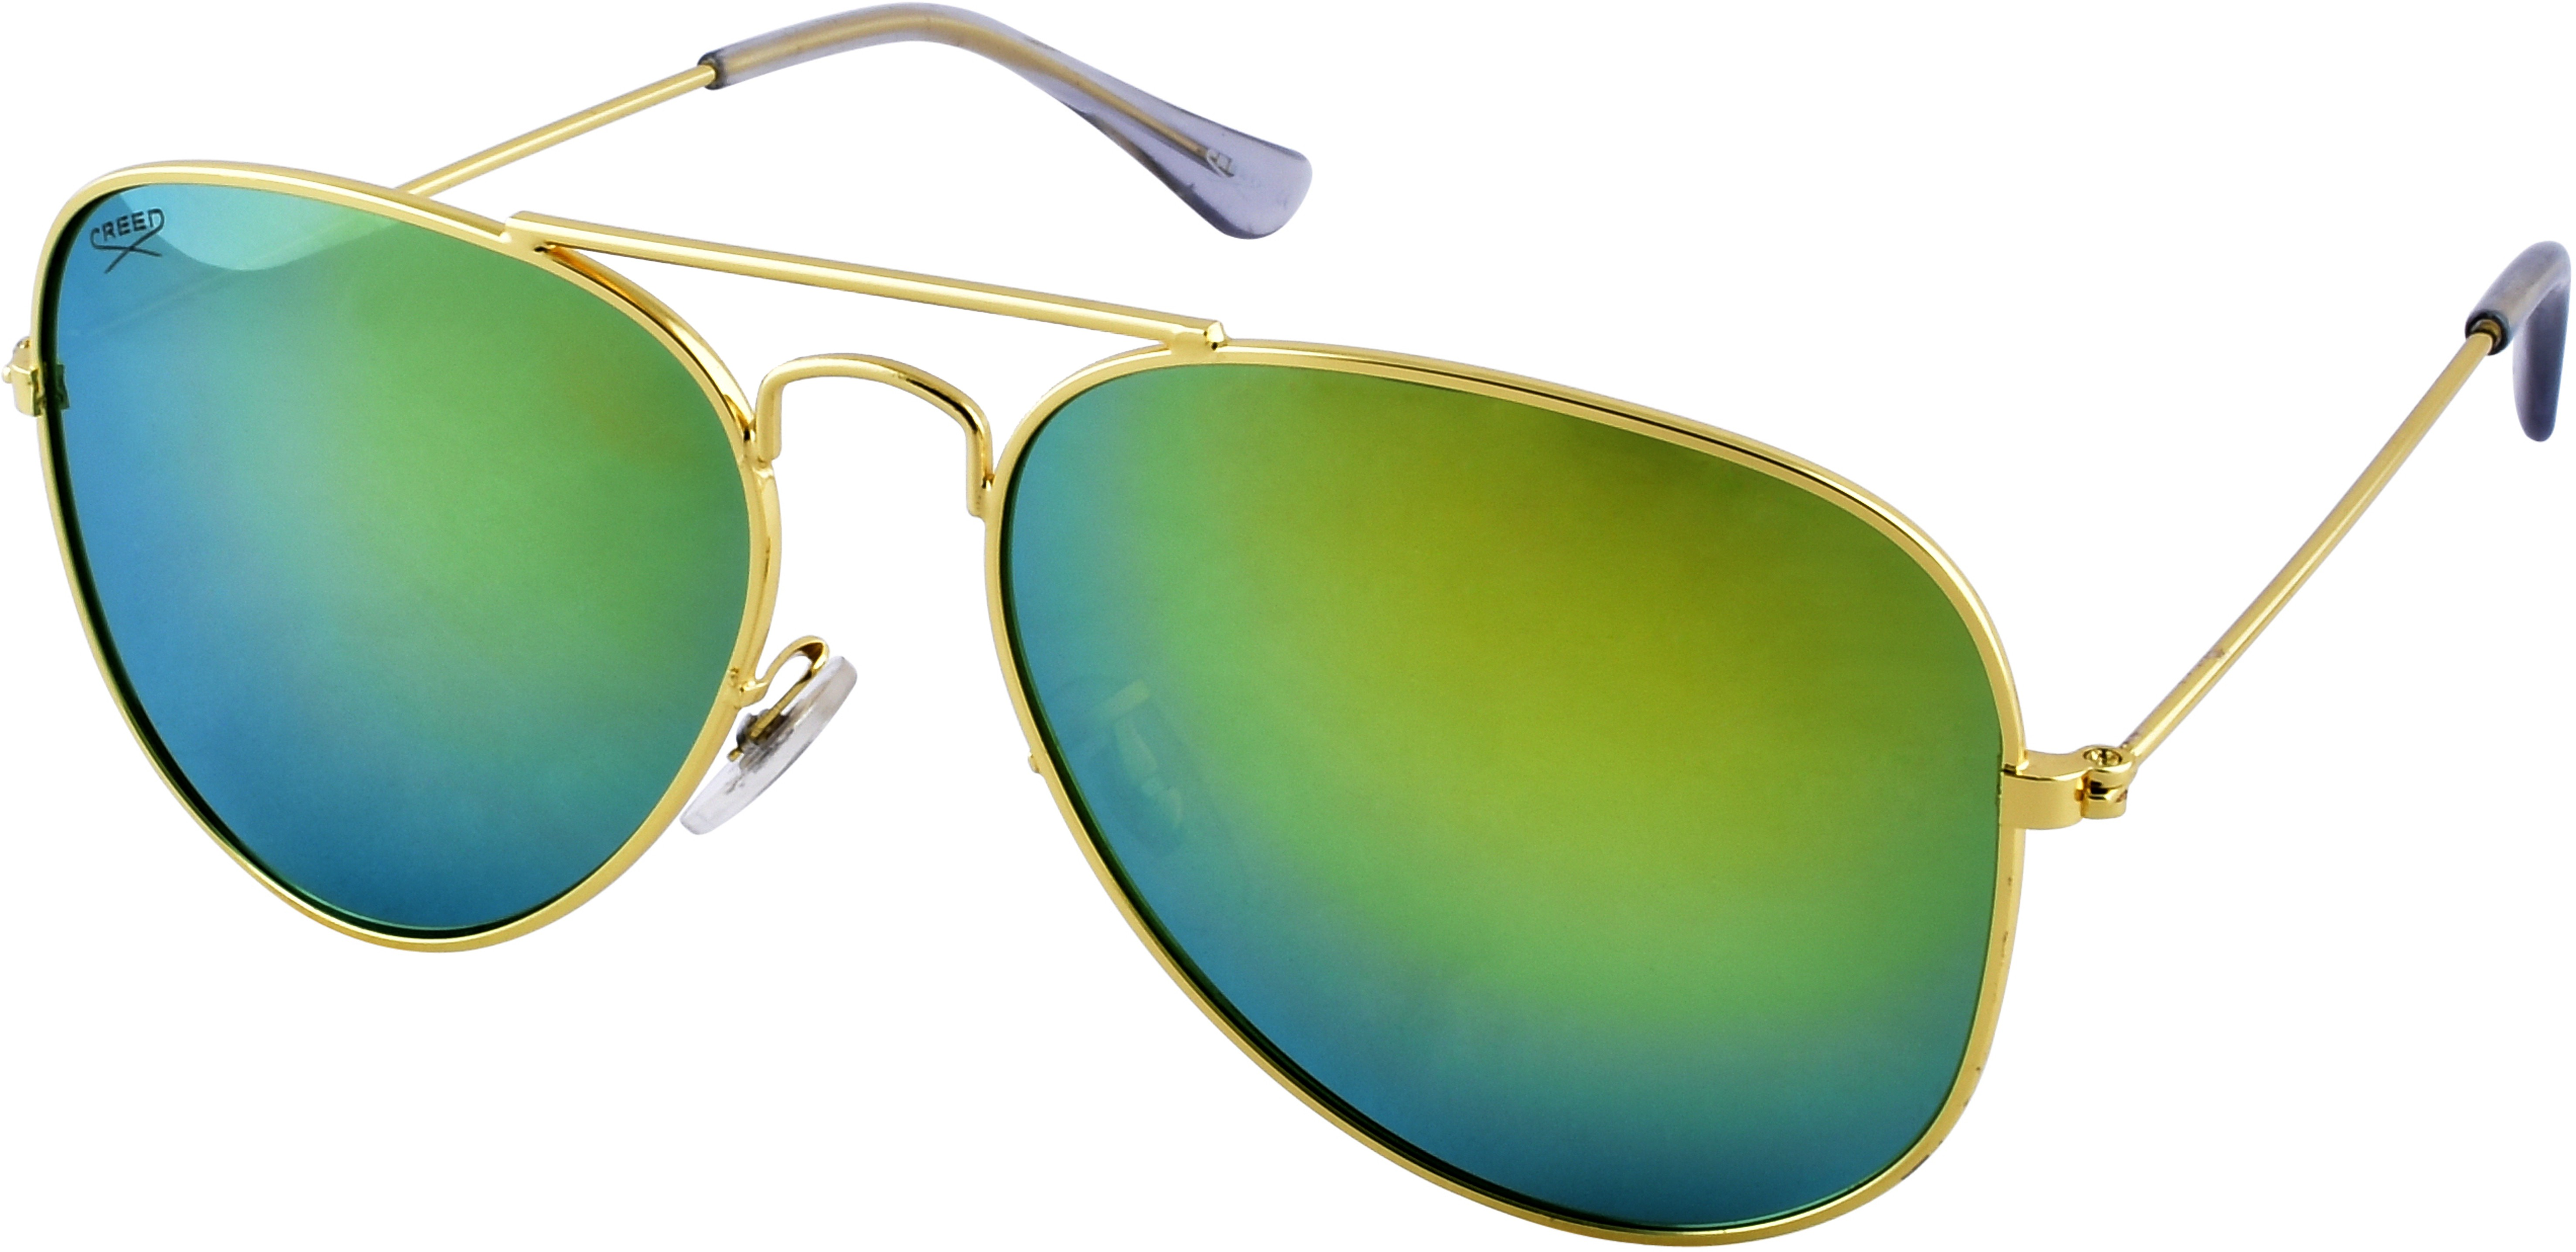 Deals - Delhi - Agera & more <br> Mens Sunglasses<br> Category - sunglasses<br> Business - Flipkart.com